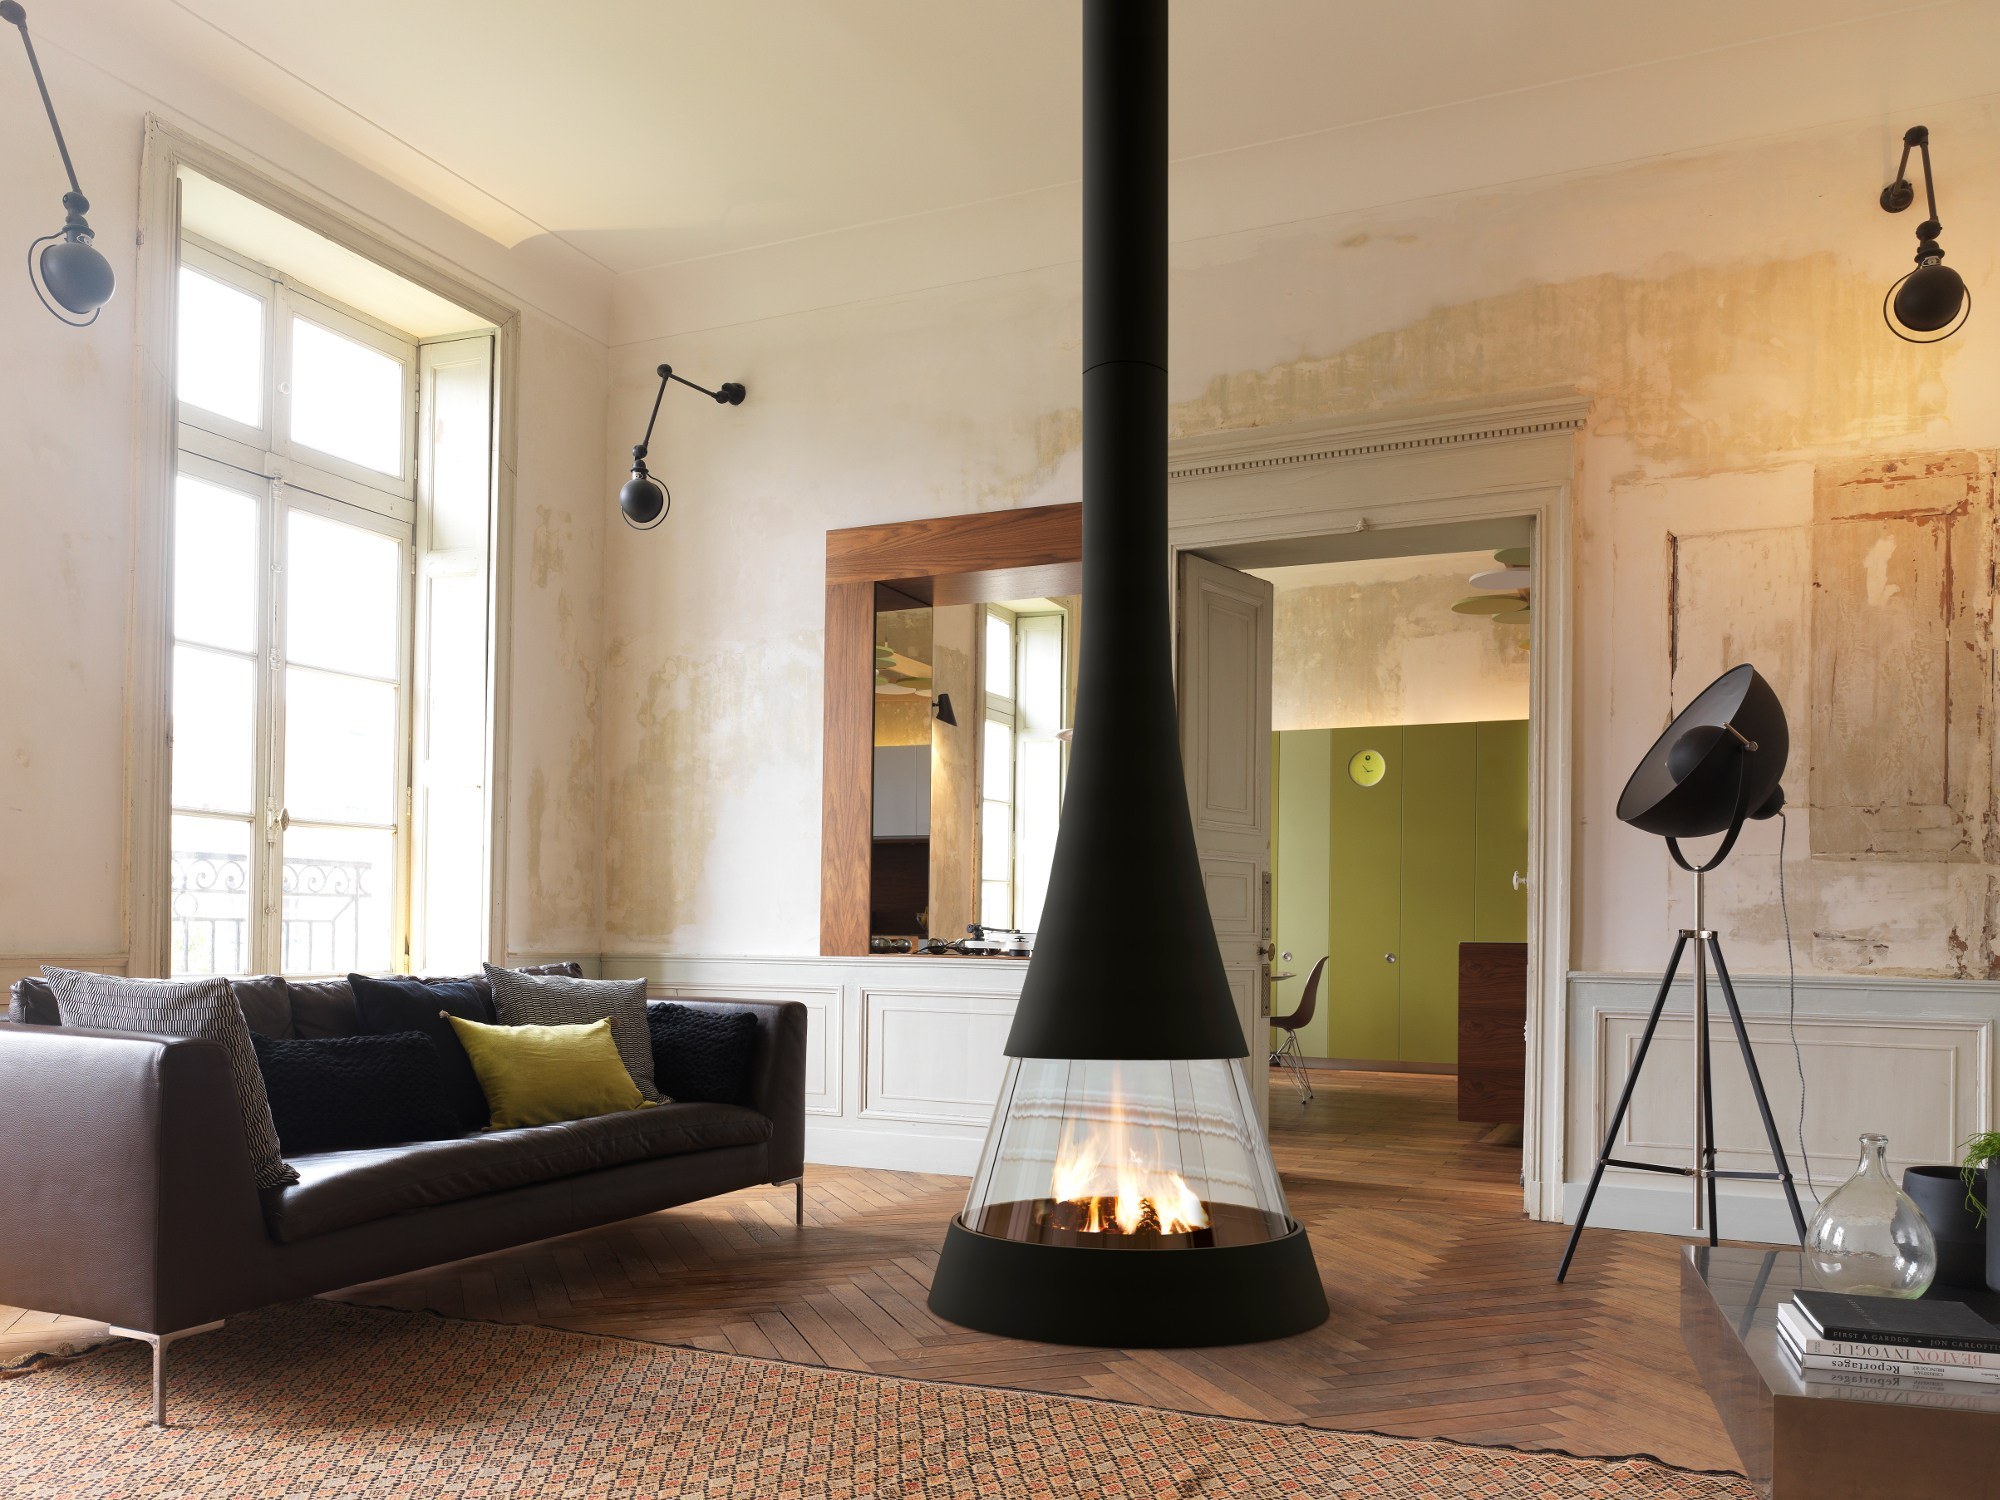 fireplace or radiator archiproducts